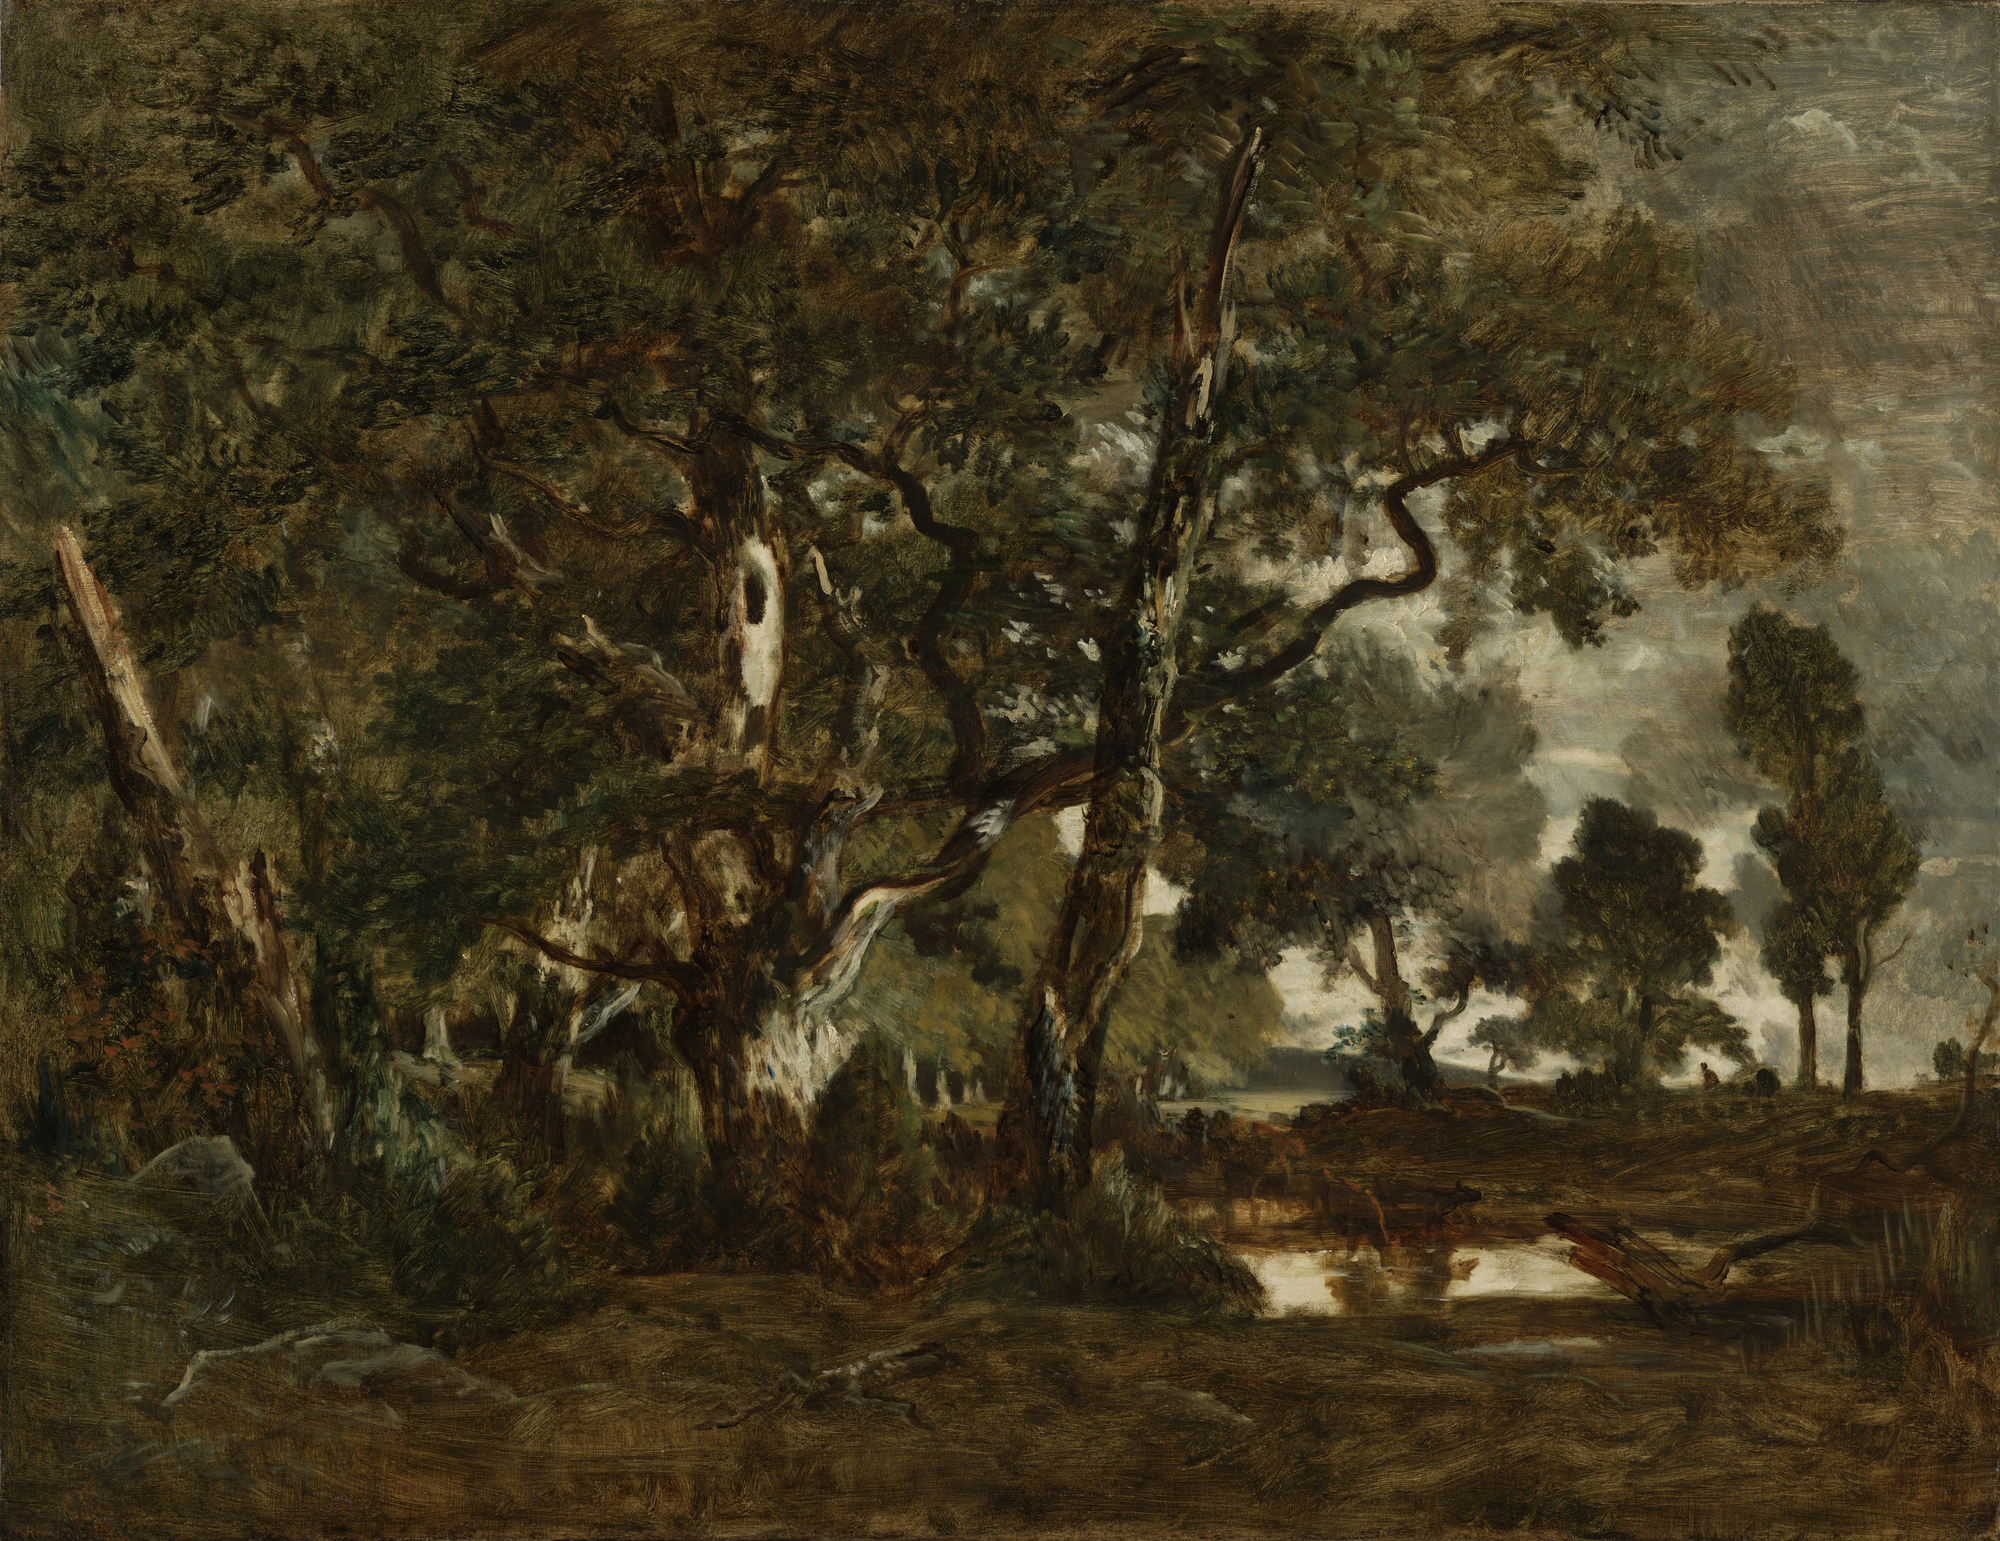 <em/>Forest of Fontainebleau, Cluster of Tall Trees Overlooking the Plain of Clair-Bois at the Edge of Bas-Bréau, about 1849–52, Théodore Rousseau. Oil on canvas